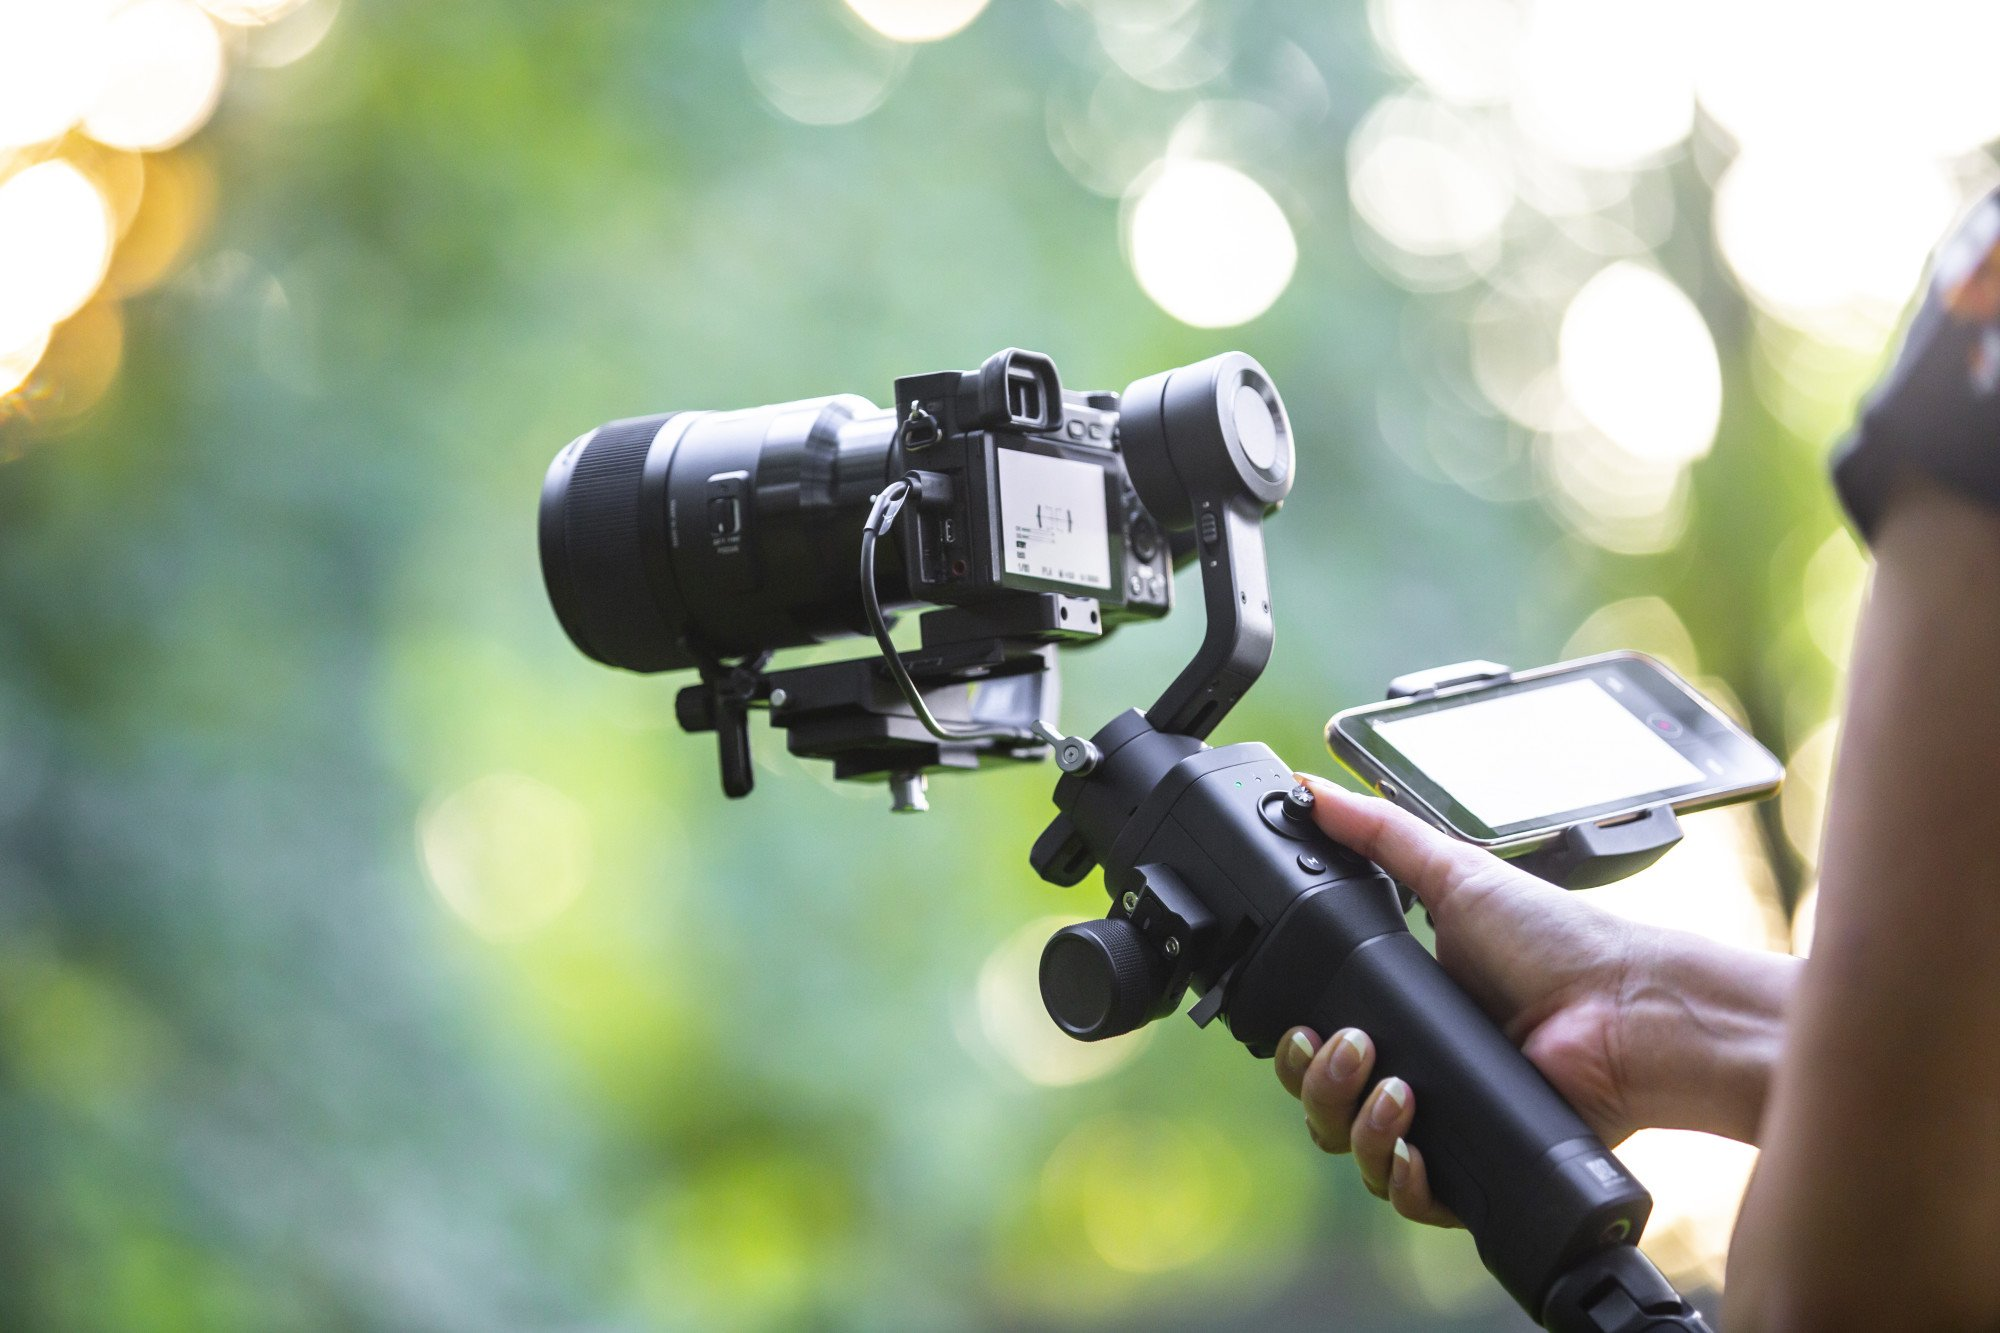 Business Video Production Trends for 2020